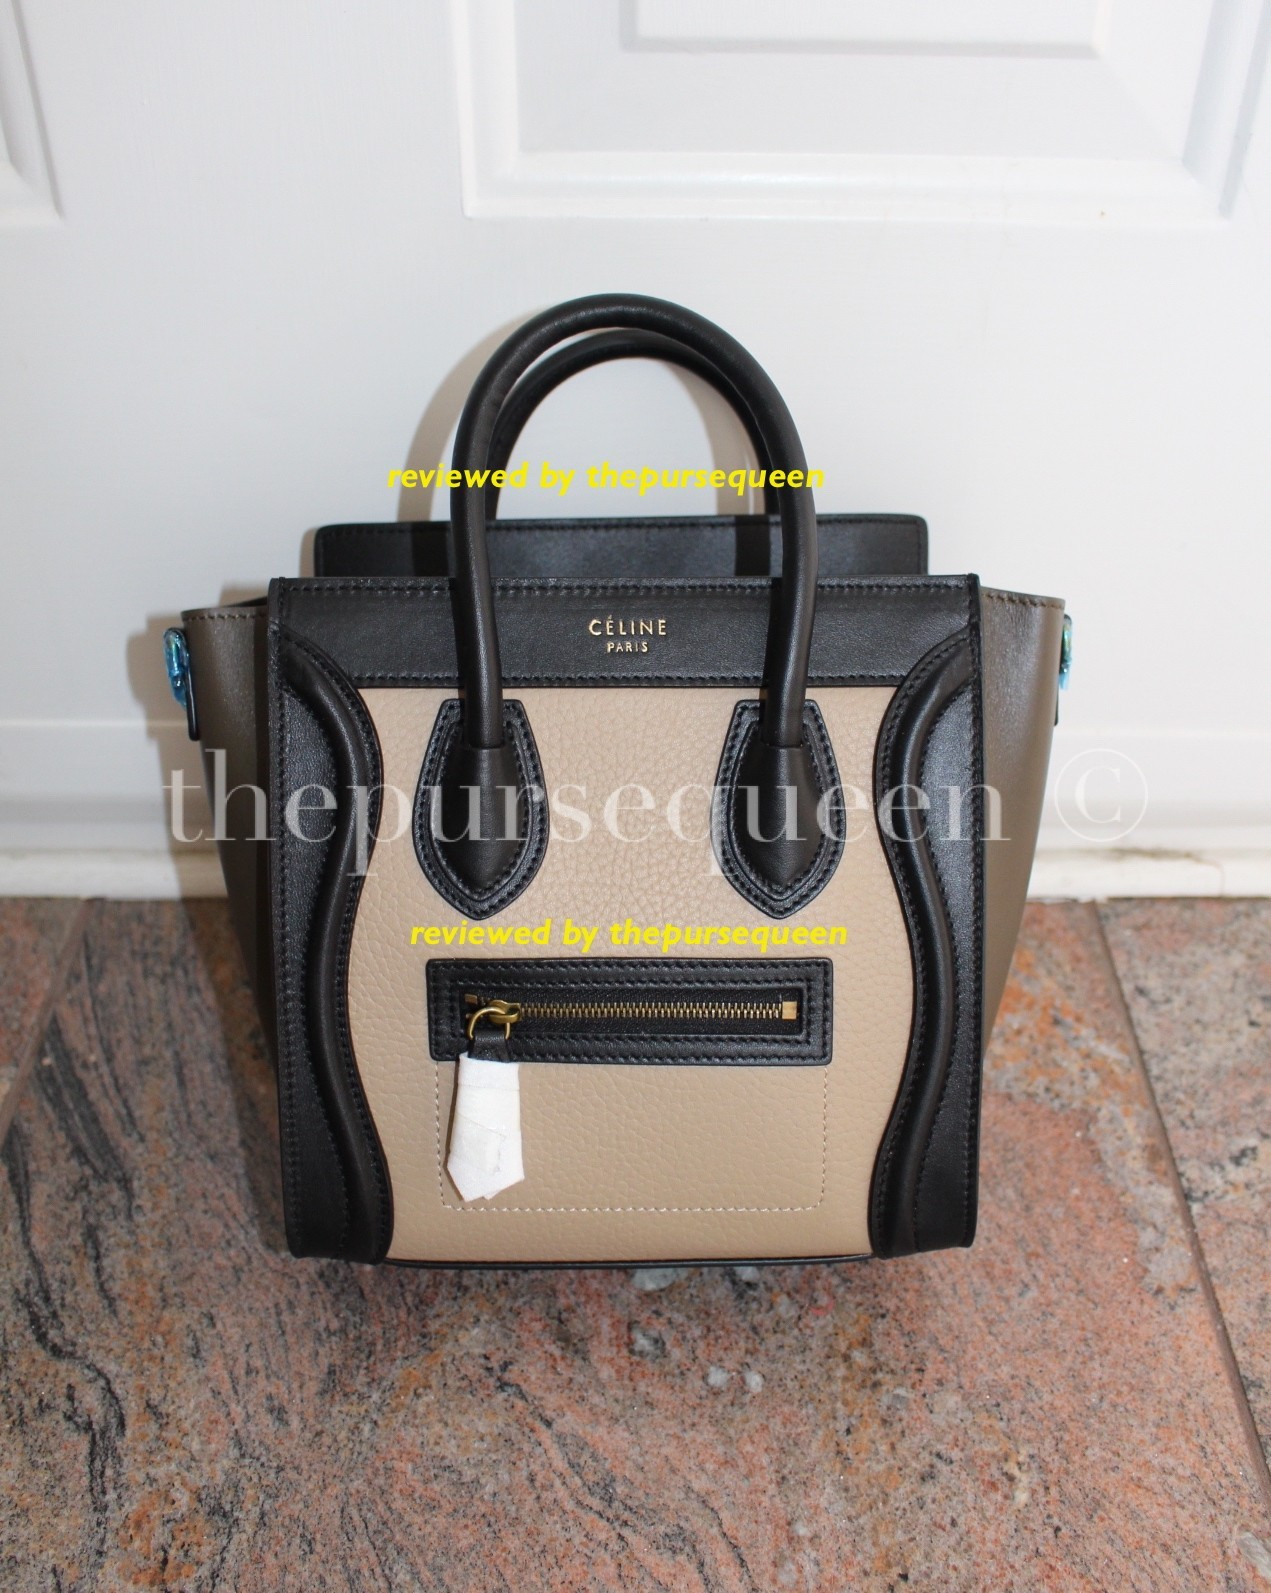 30cc0ab66039 Celine Nano Luggage Bag from counterluxury.cn Review  Comparison (in pics)!  - Authentic   Replica Handbag Reviews by The Purse Queen